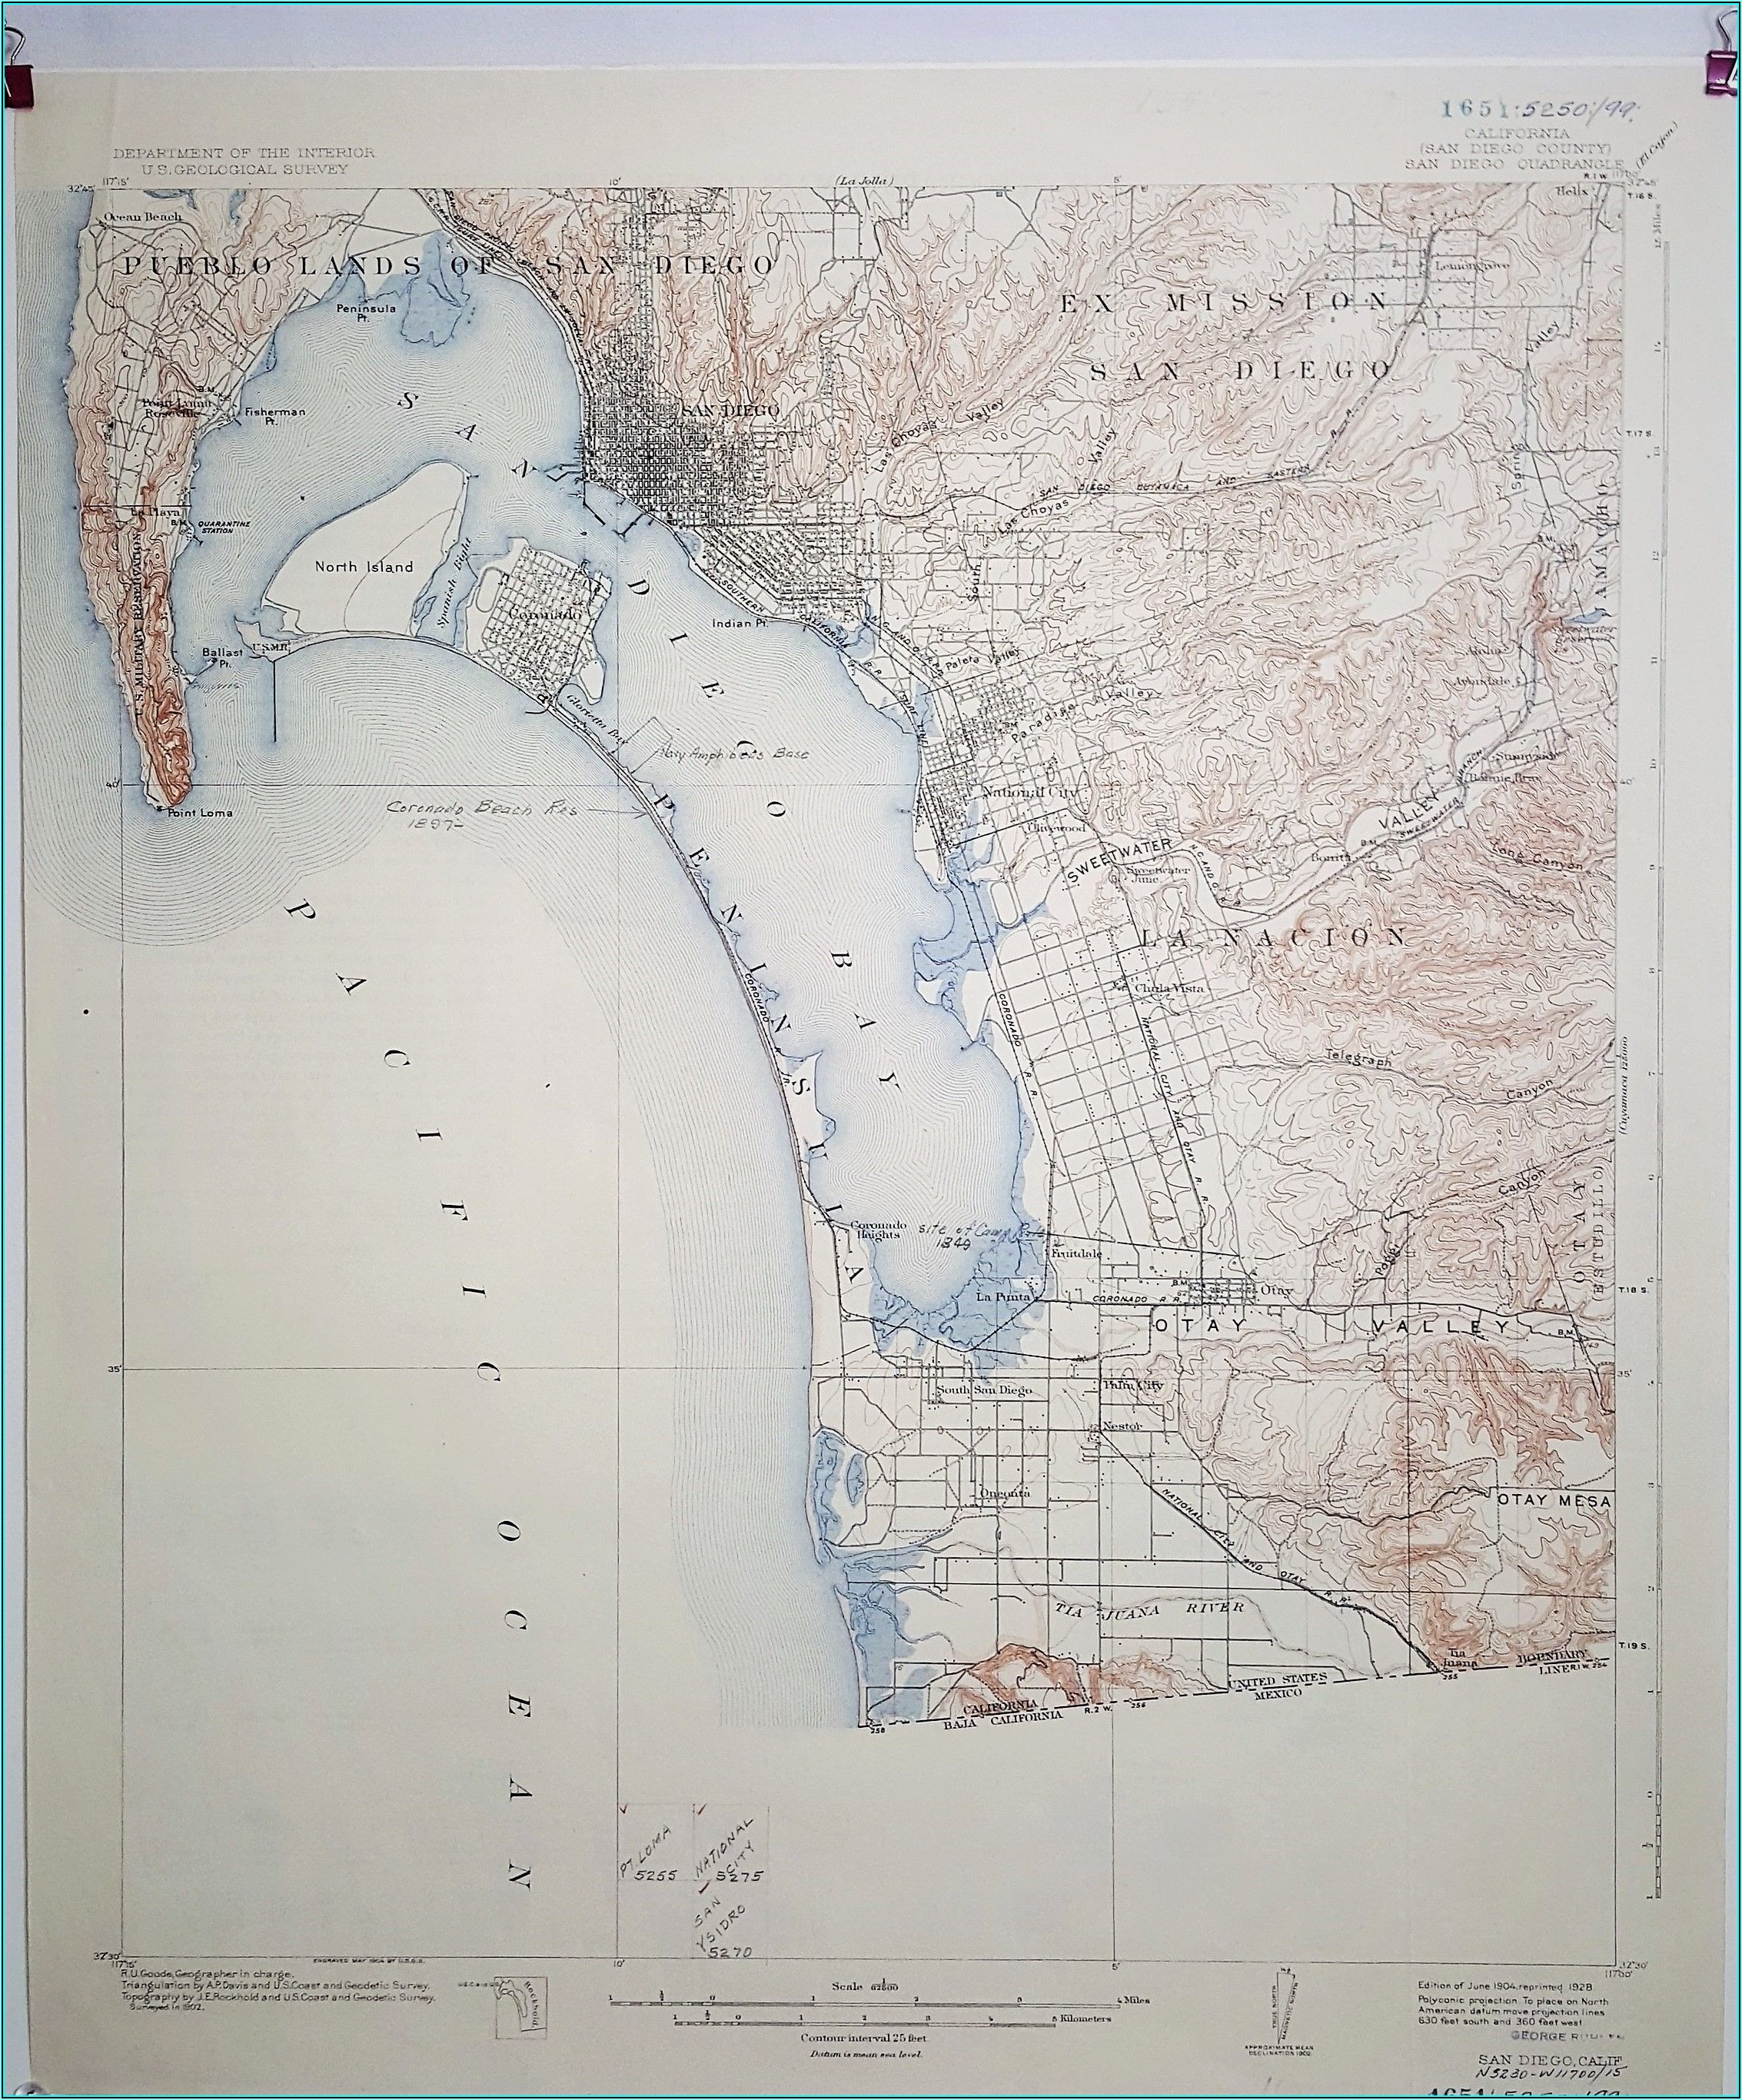 San Diego County Topographic Map